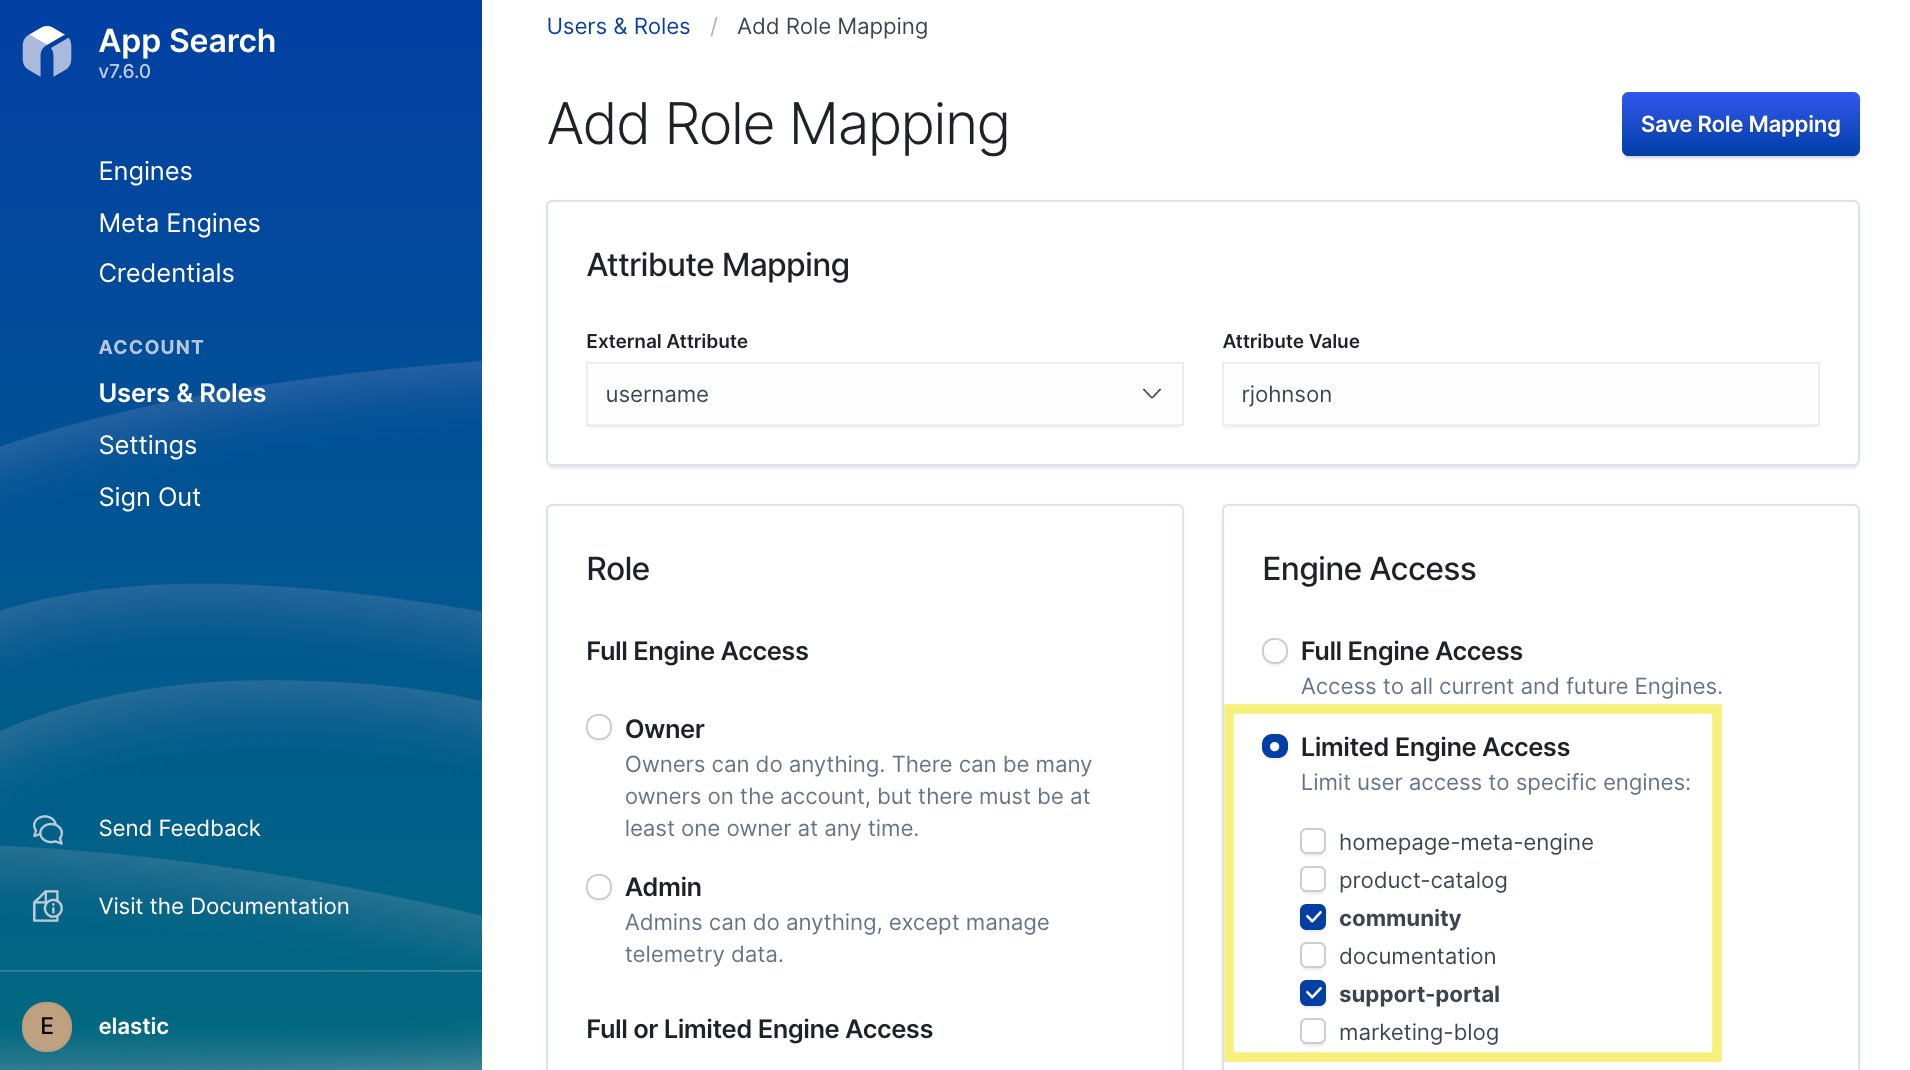 Specifying role mapping for engines